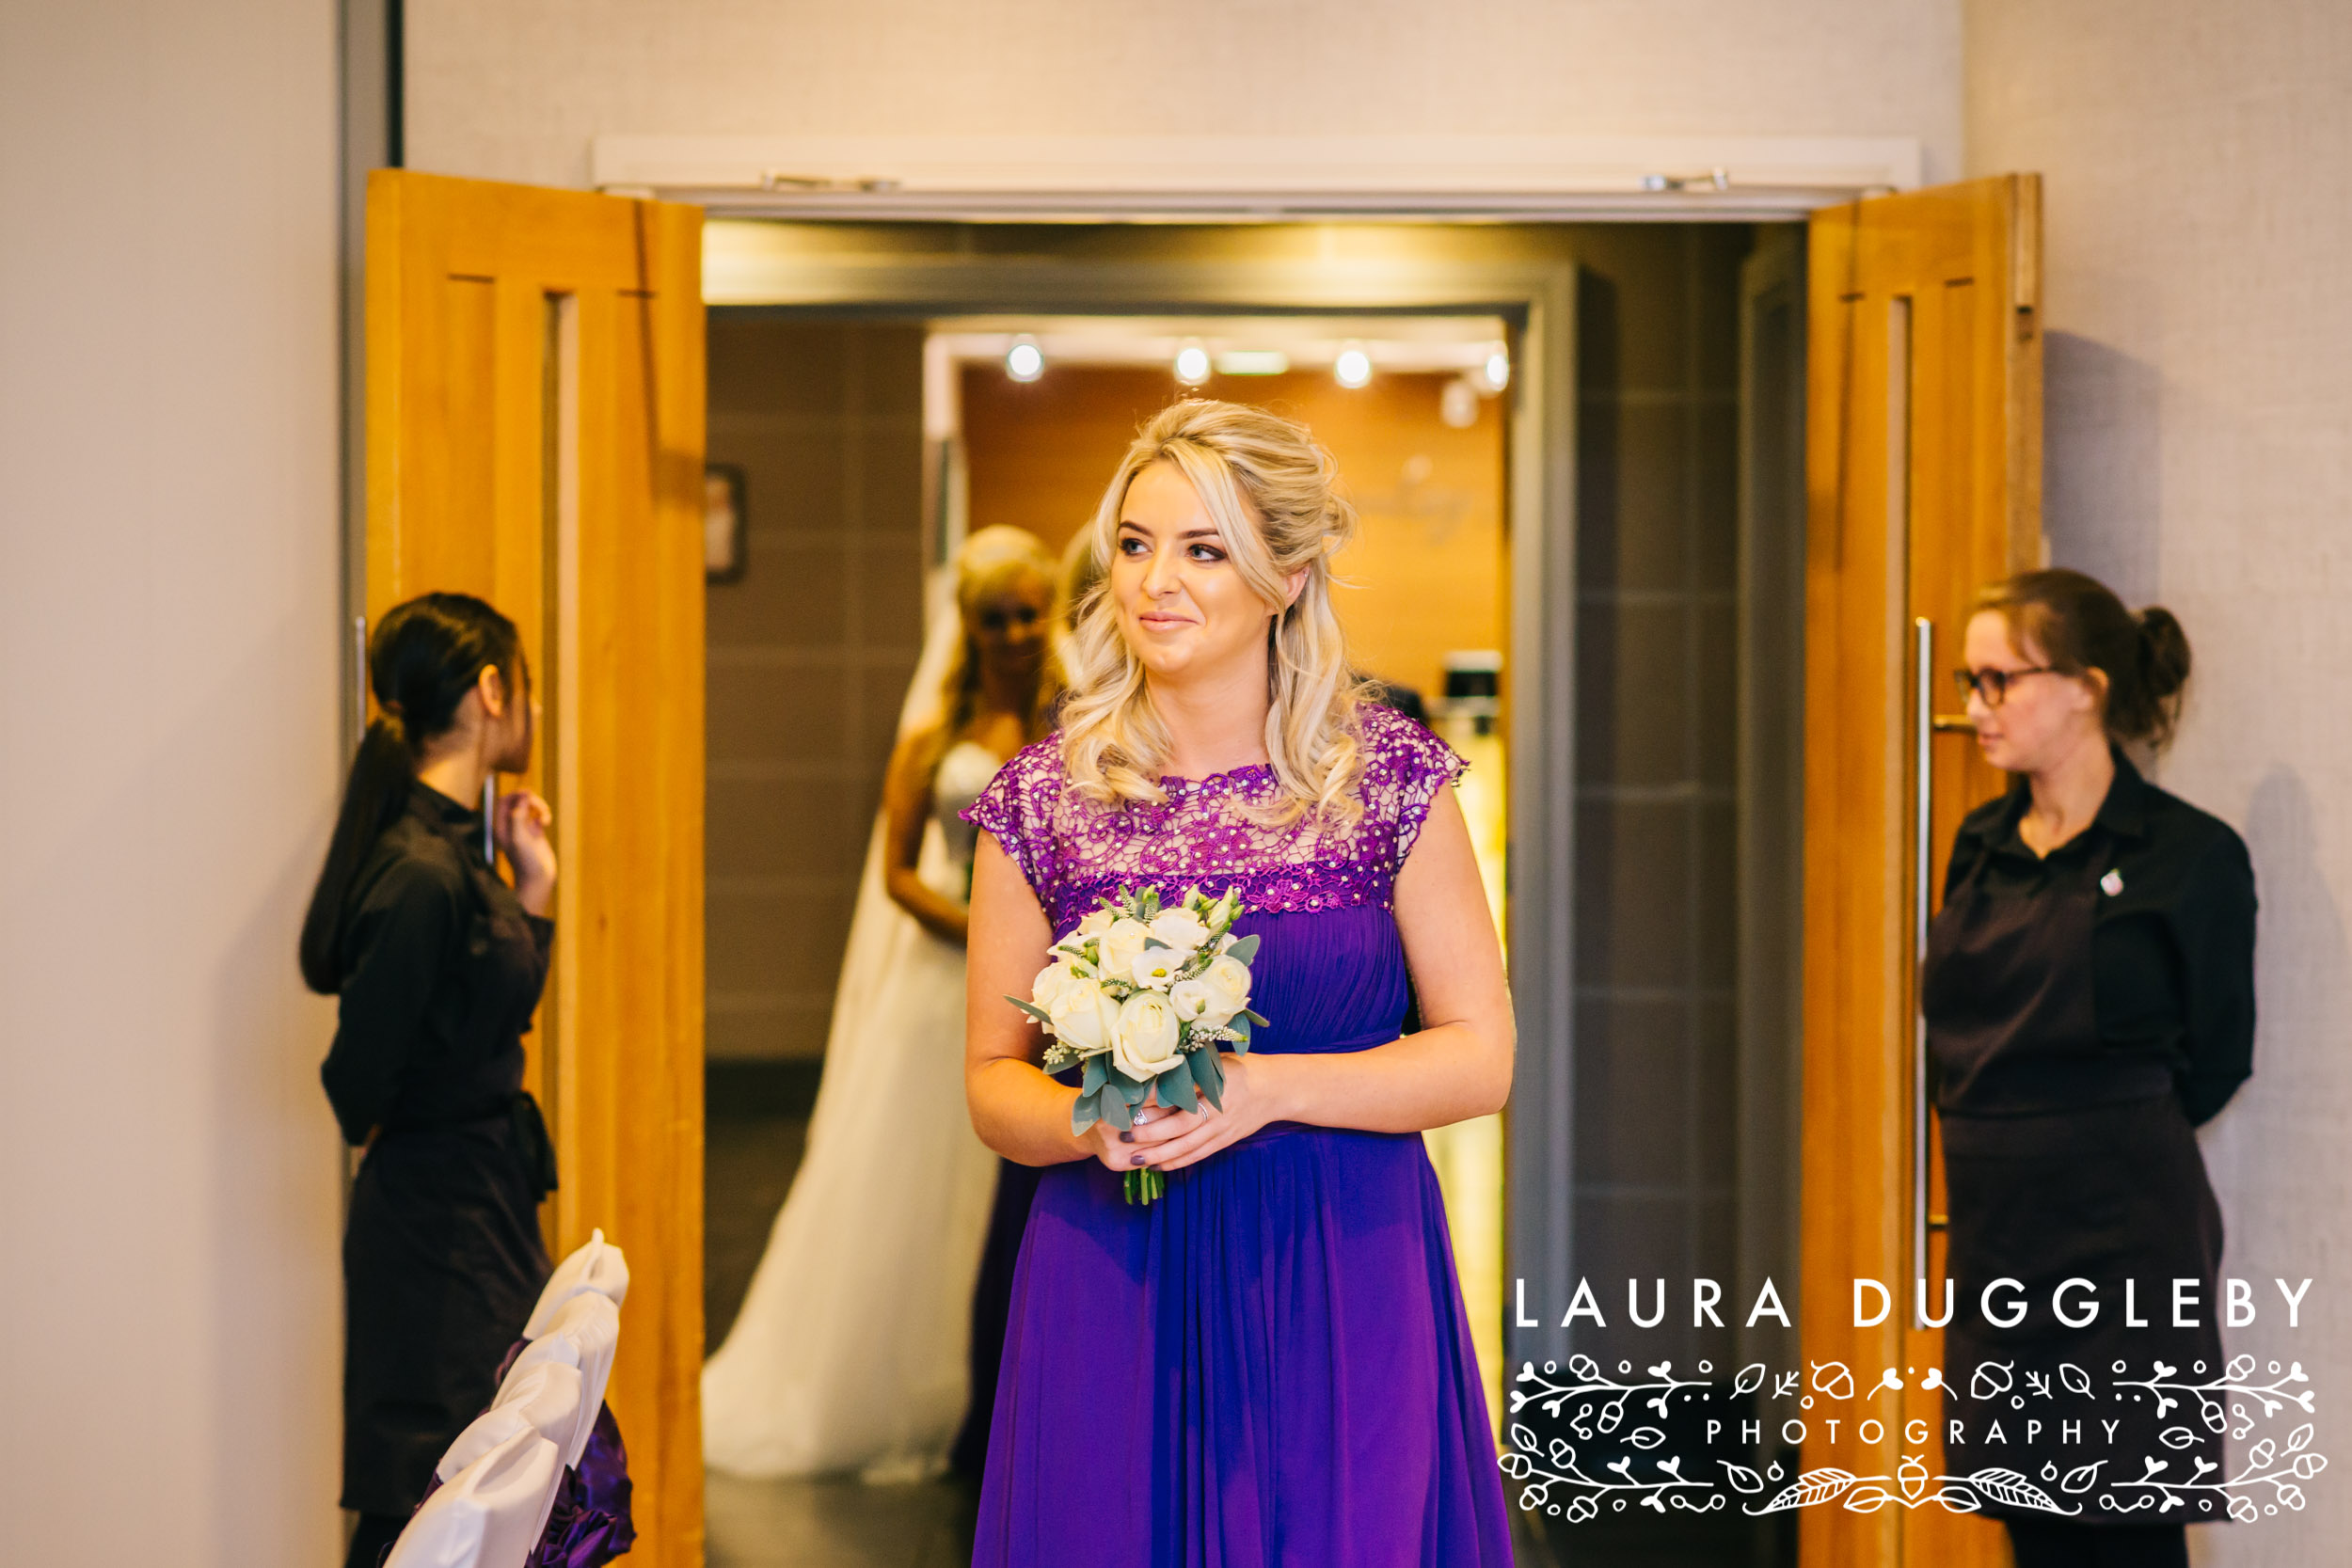 Stanley House Lancashire Wedding Photographer-11a.jpg